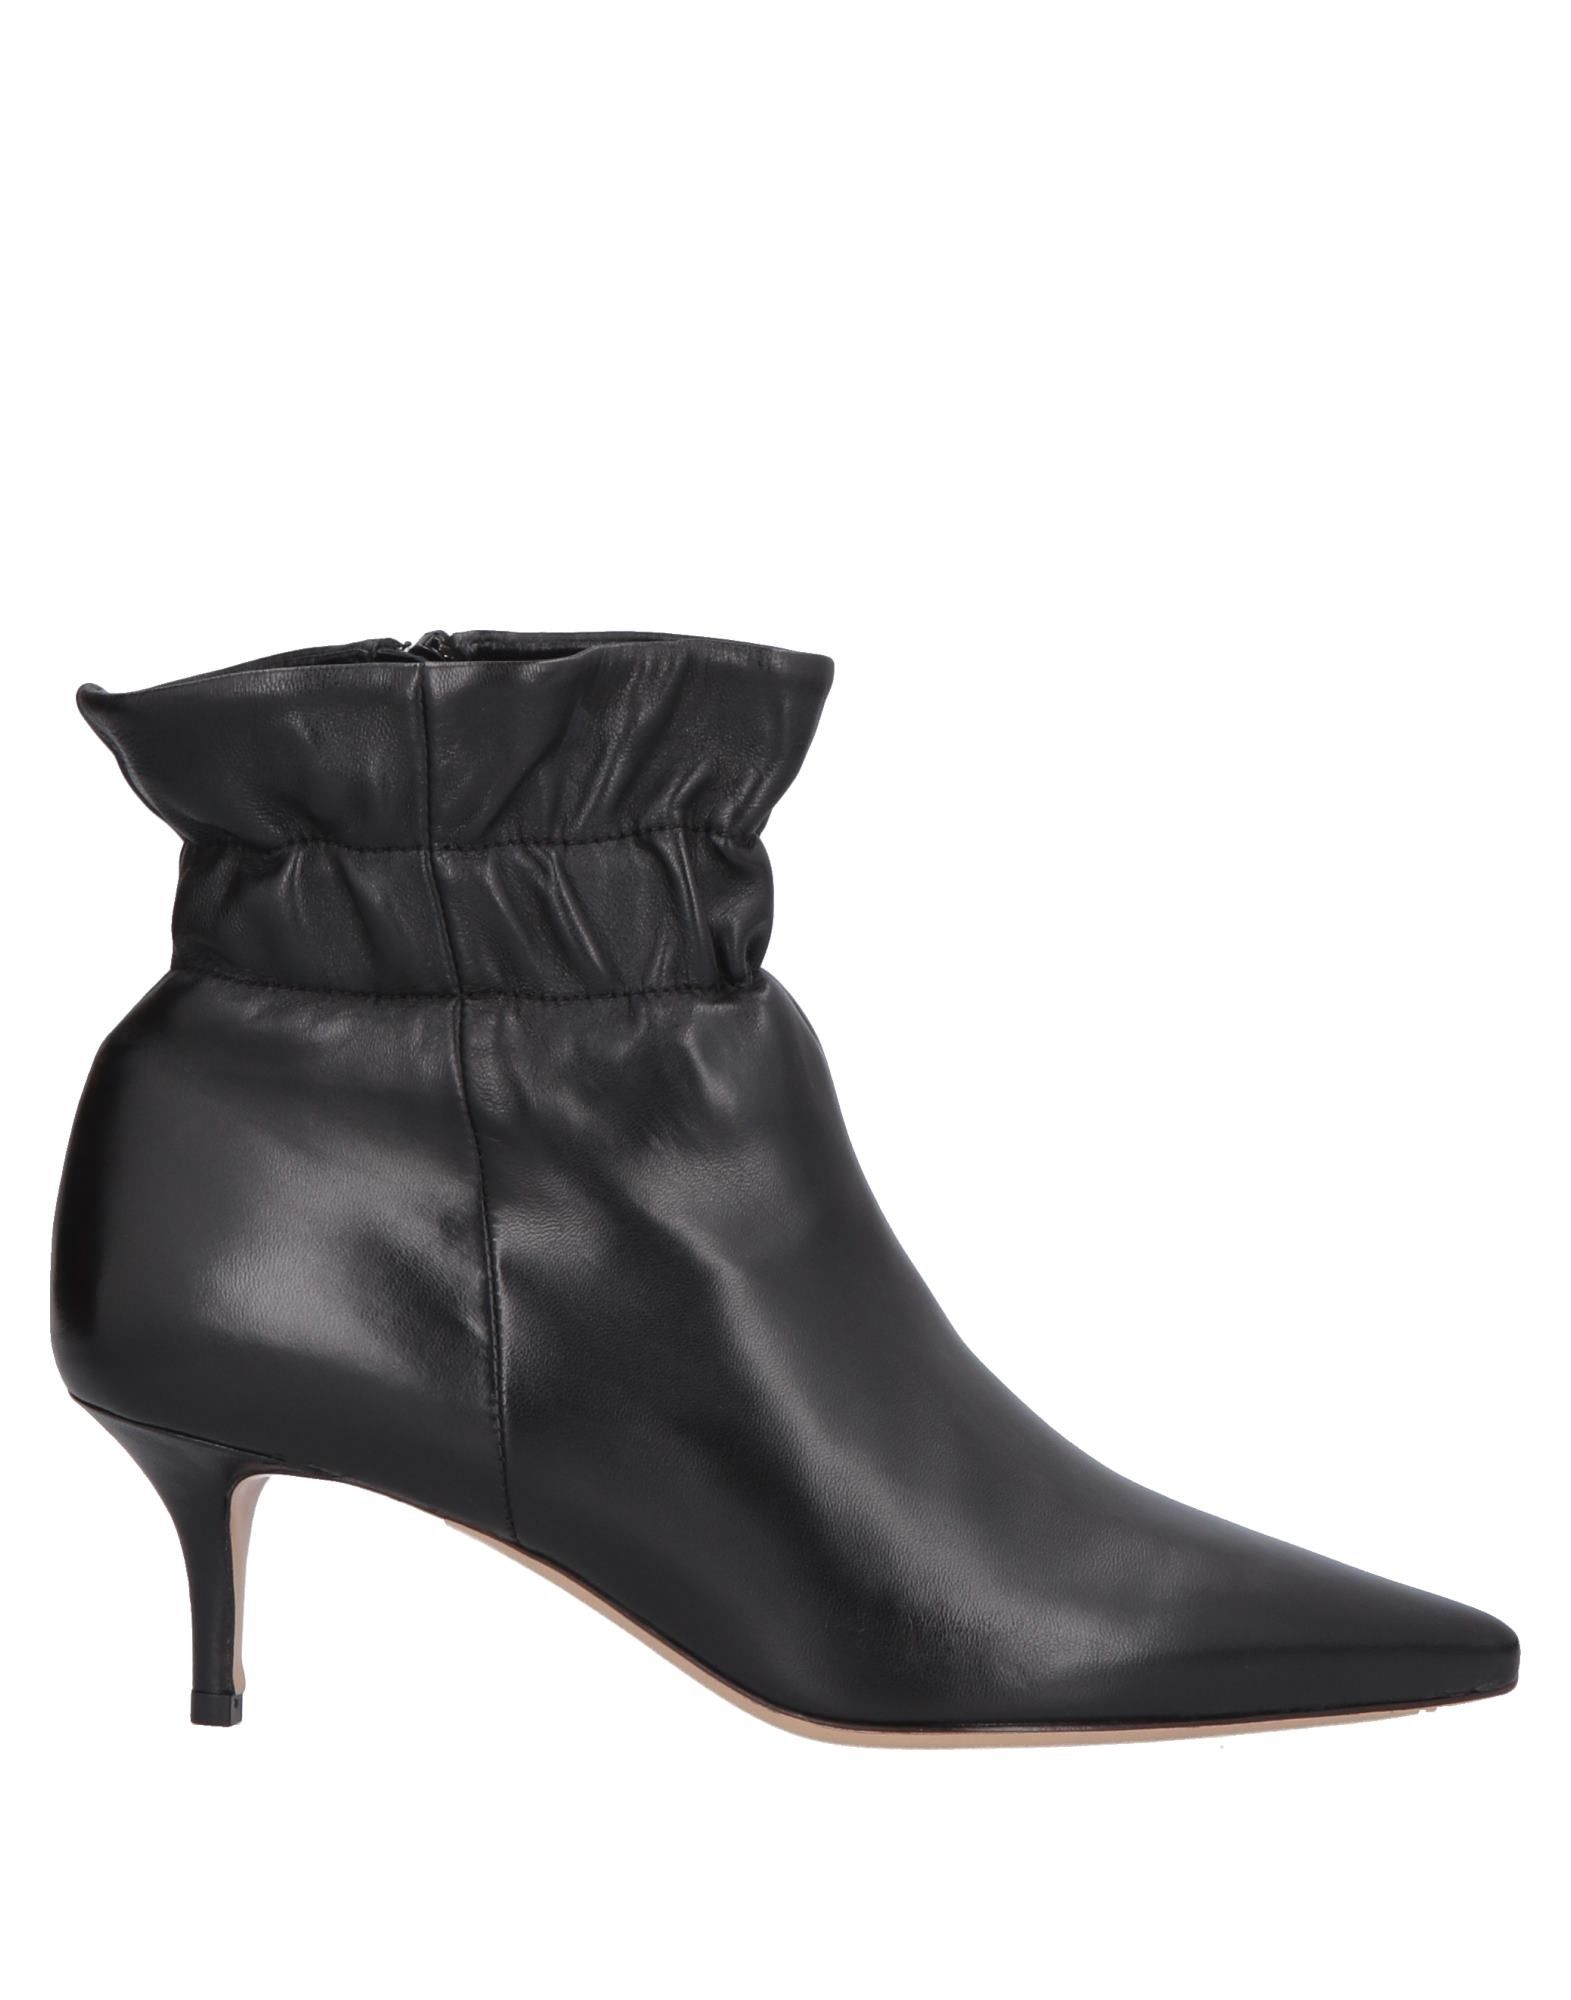 Bottine Spaziomoda Femme - Bottines Spaziomoda   - 11676165QR